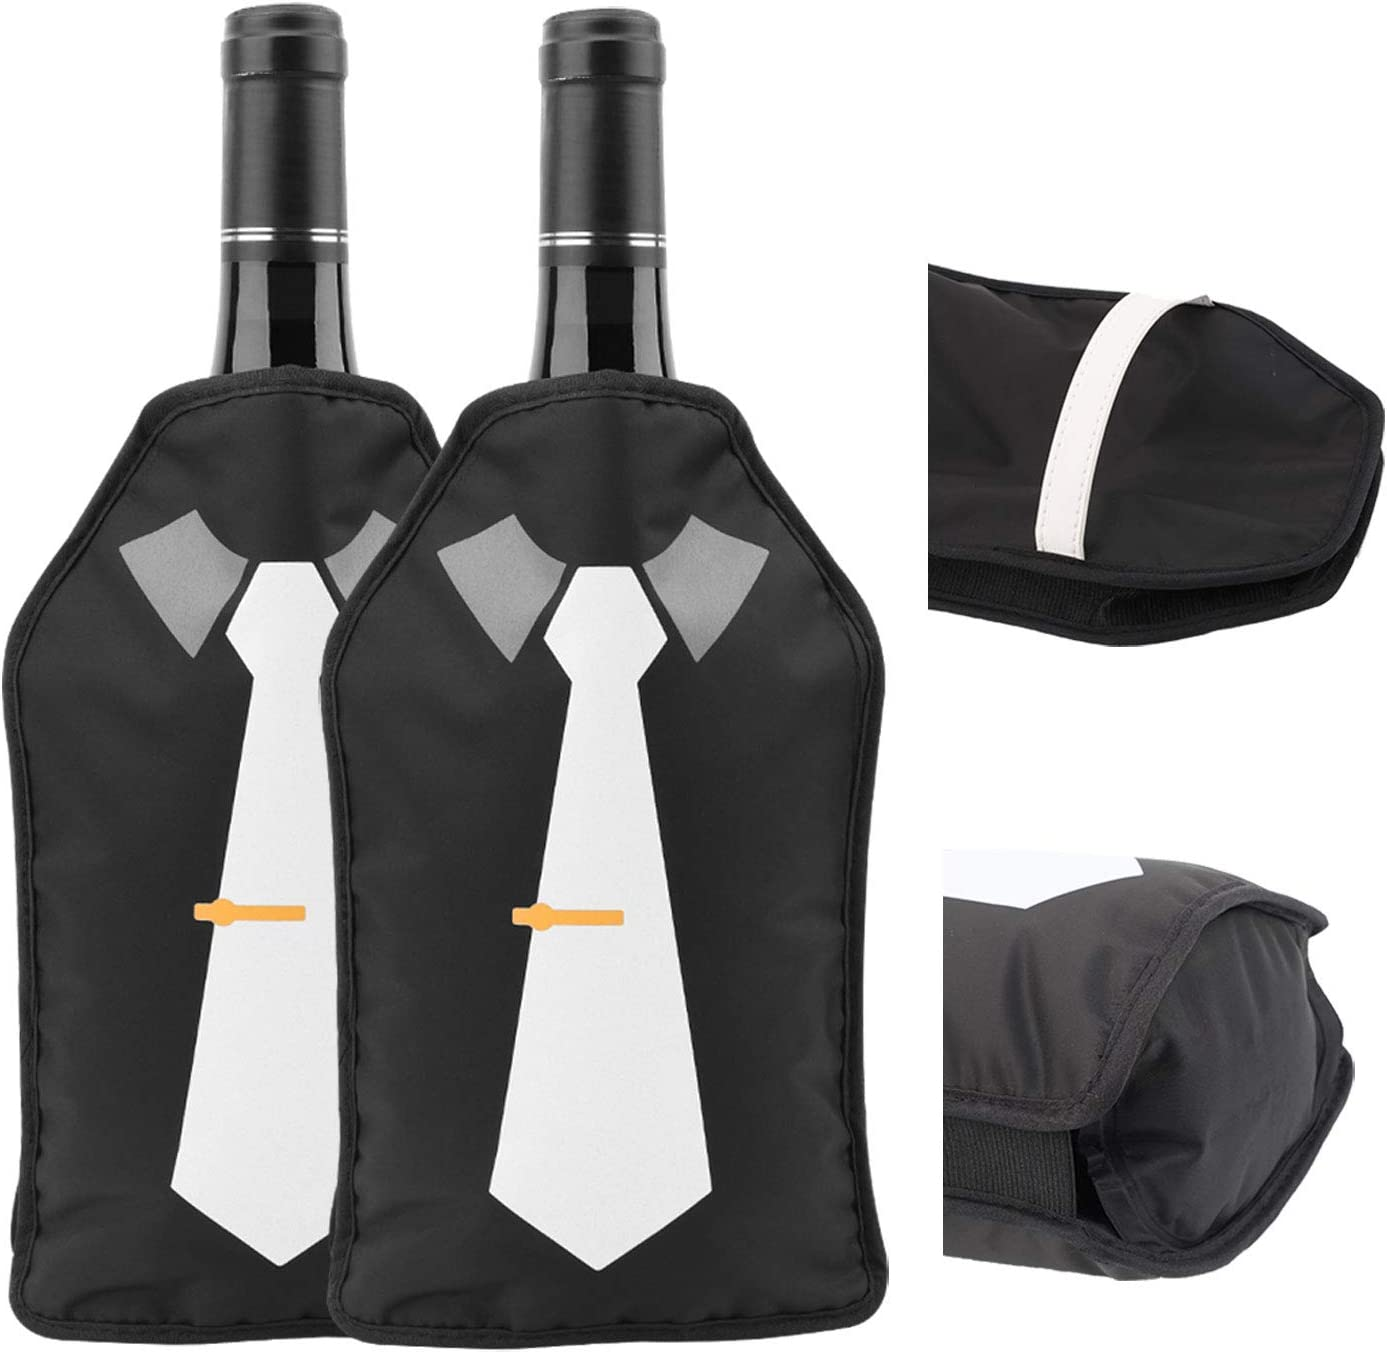 At the price of surprise Mail order 2 Pack Drink Wine Champagne Sleeve-Better Freezer Chiller Bottle